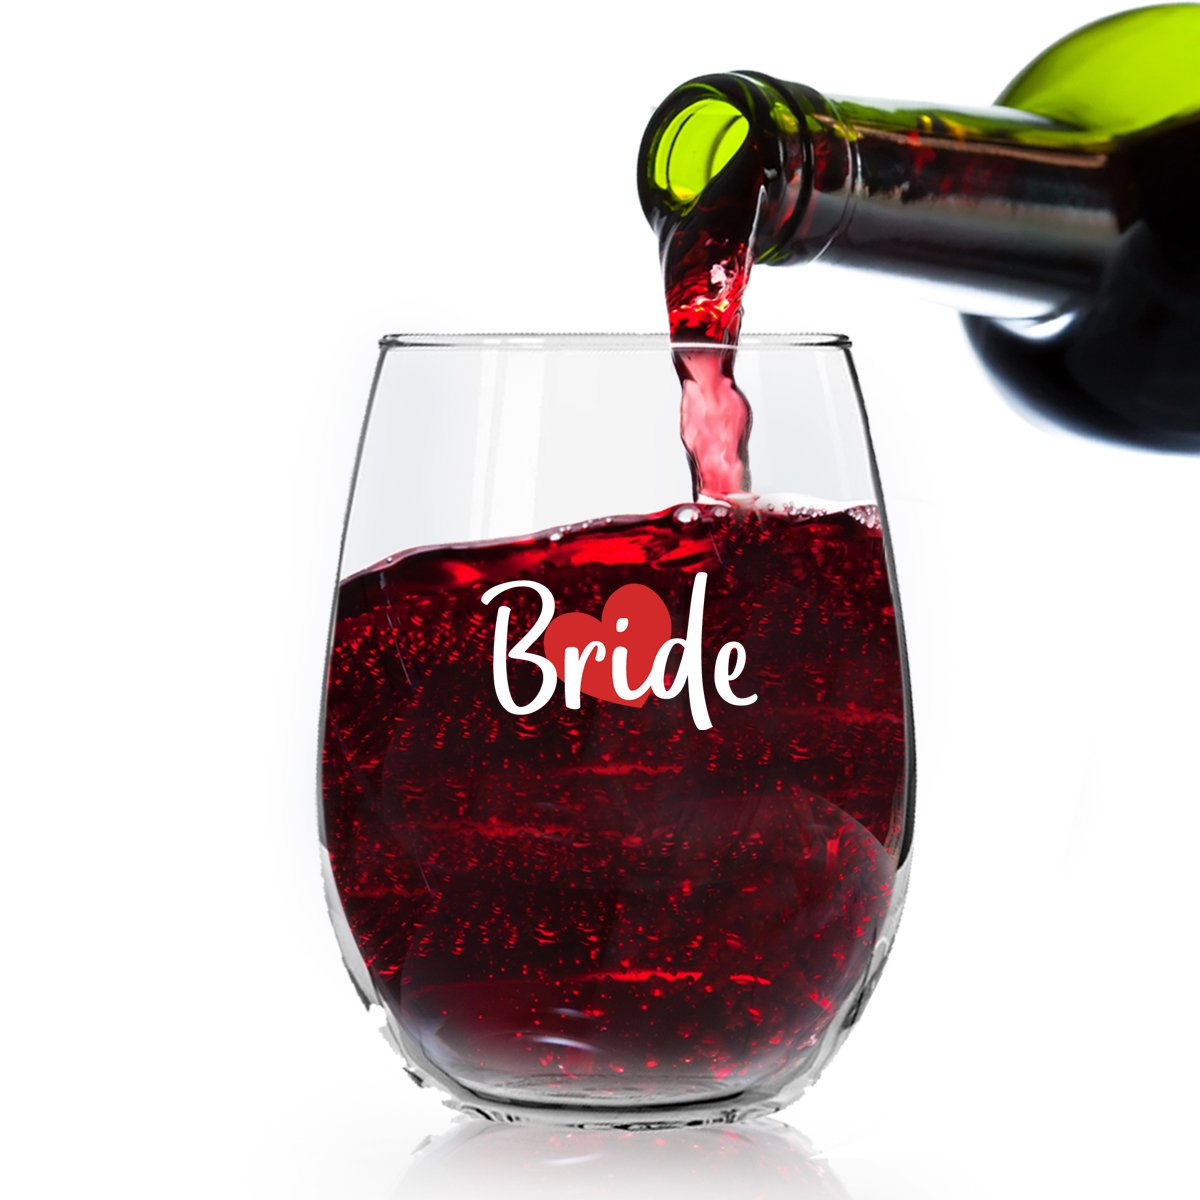 I Do Crew Bridal Party Wine Glasses 15 Ounce Glasses Maid of Honor an Bridesmaid Stemless Wine Glasses for The Bride Tribe Set of 4 Bride Bachelorette Party Made in USA Bridal Party